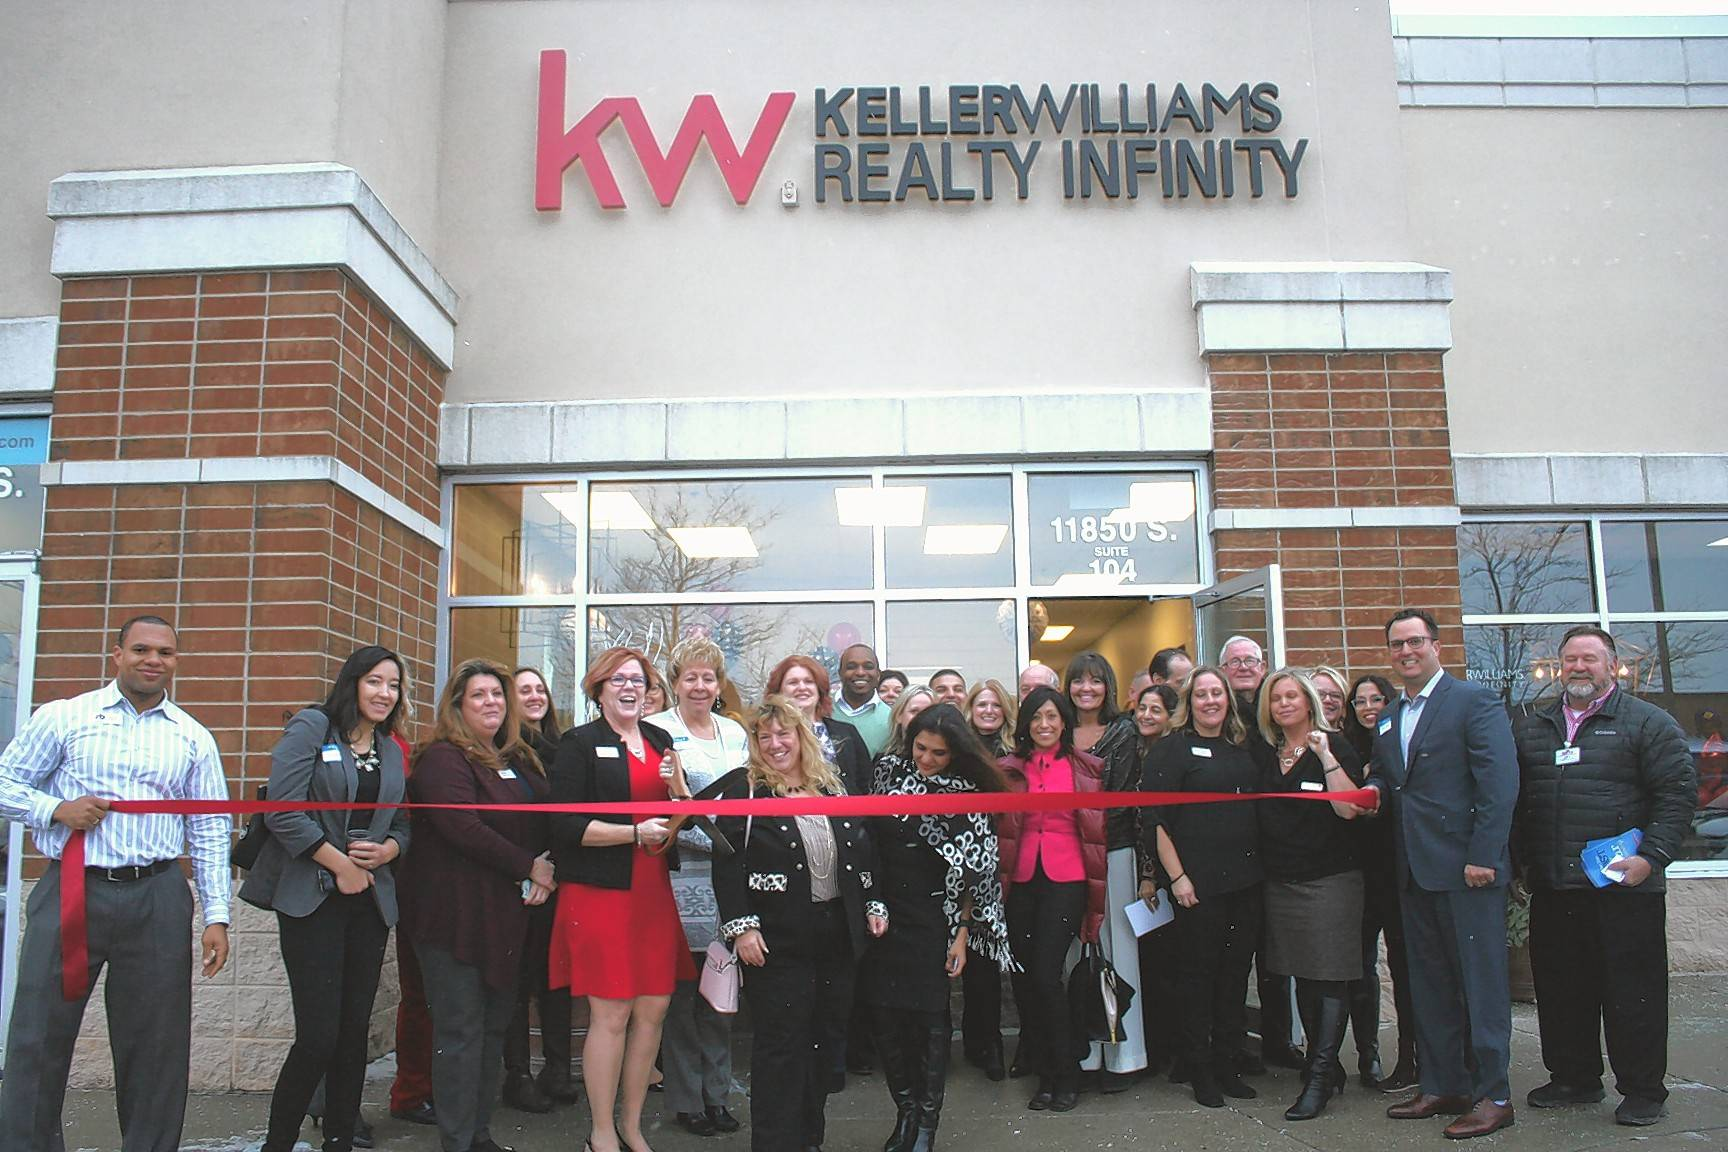 The Oswego & Plainfield Area chambers of commerce recently had a joint ribbon cutting for the new Keller Williams Infinity Office, 11850 S. Route 59, Plainfield, managed by Jeannie LaMarre.